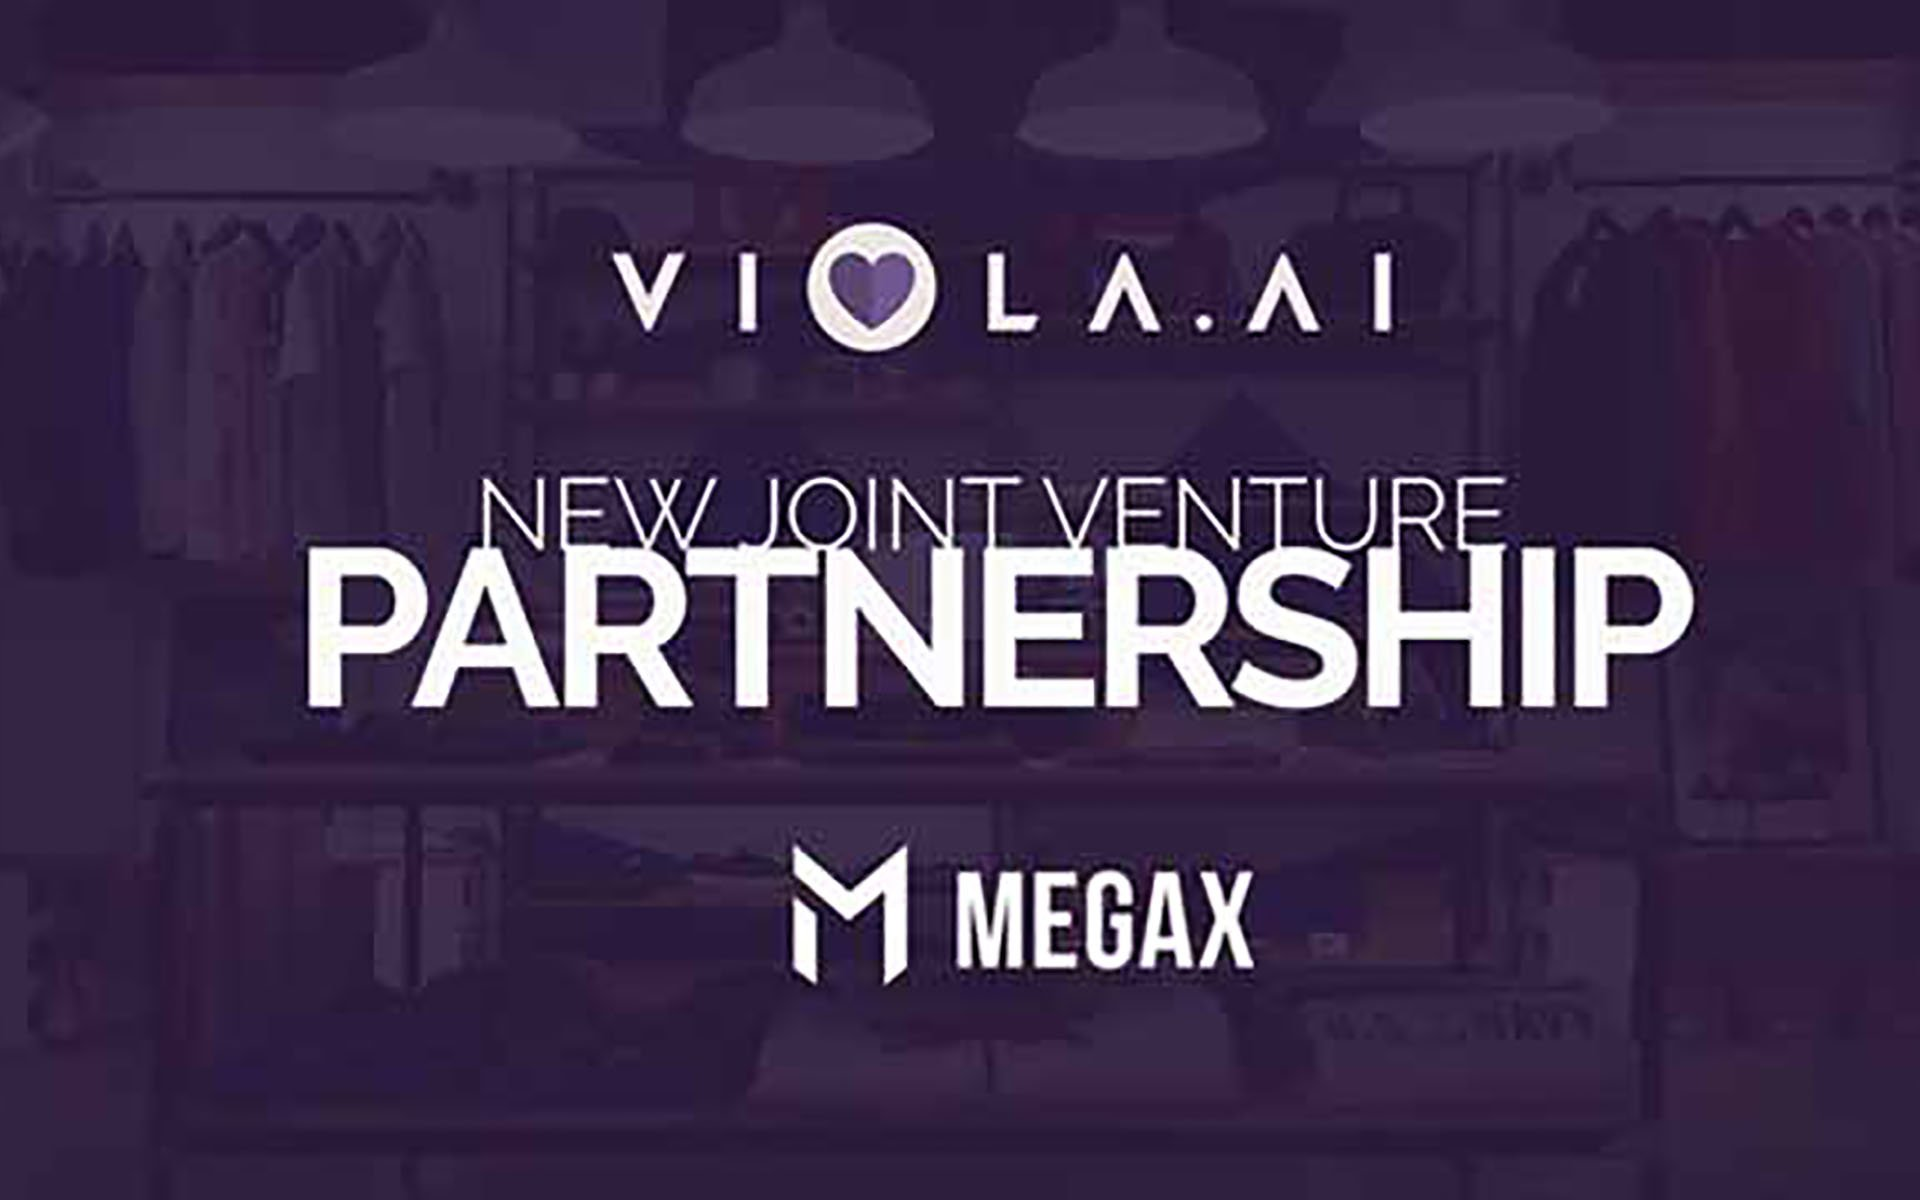 Viola.AI Announces New Joint Venture Partnership with MegaX to Build AI-Driven Worldwide Shopping Experience for The Future